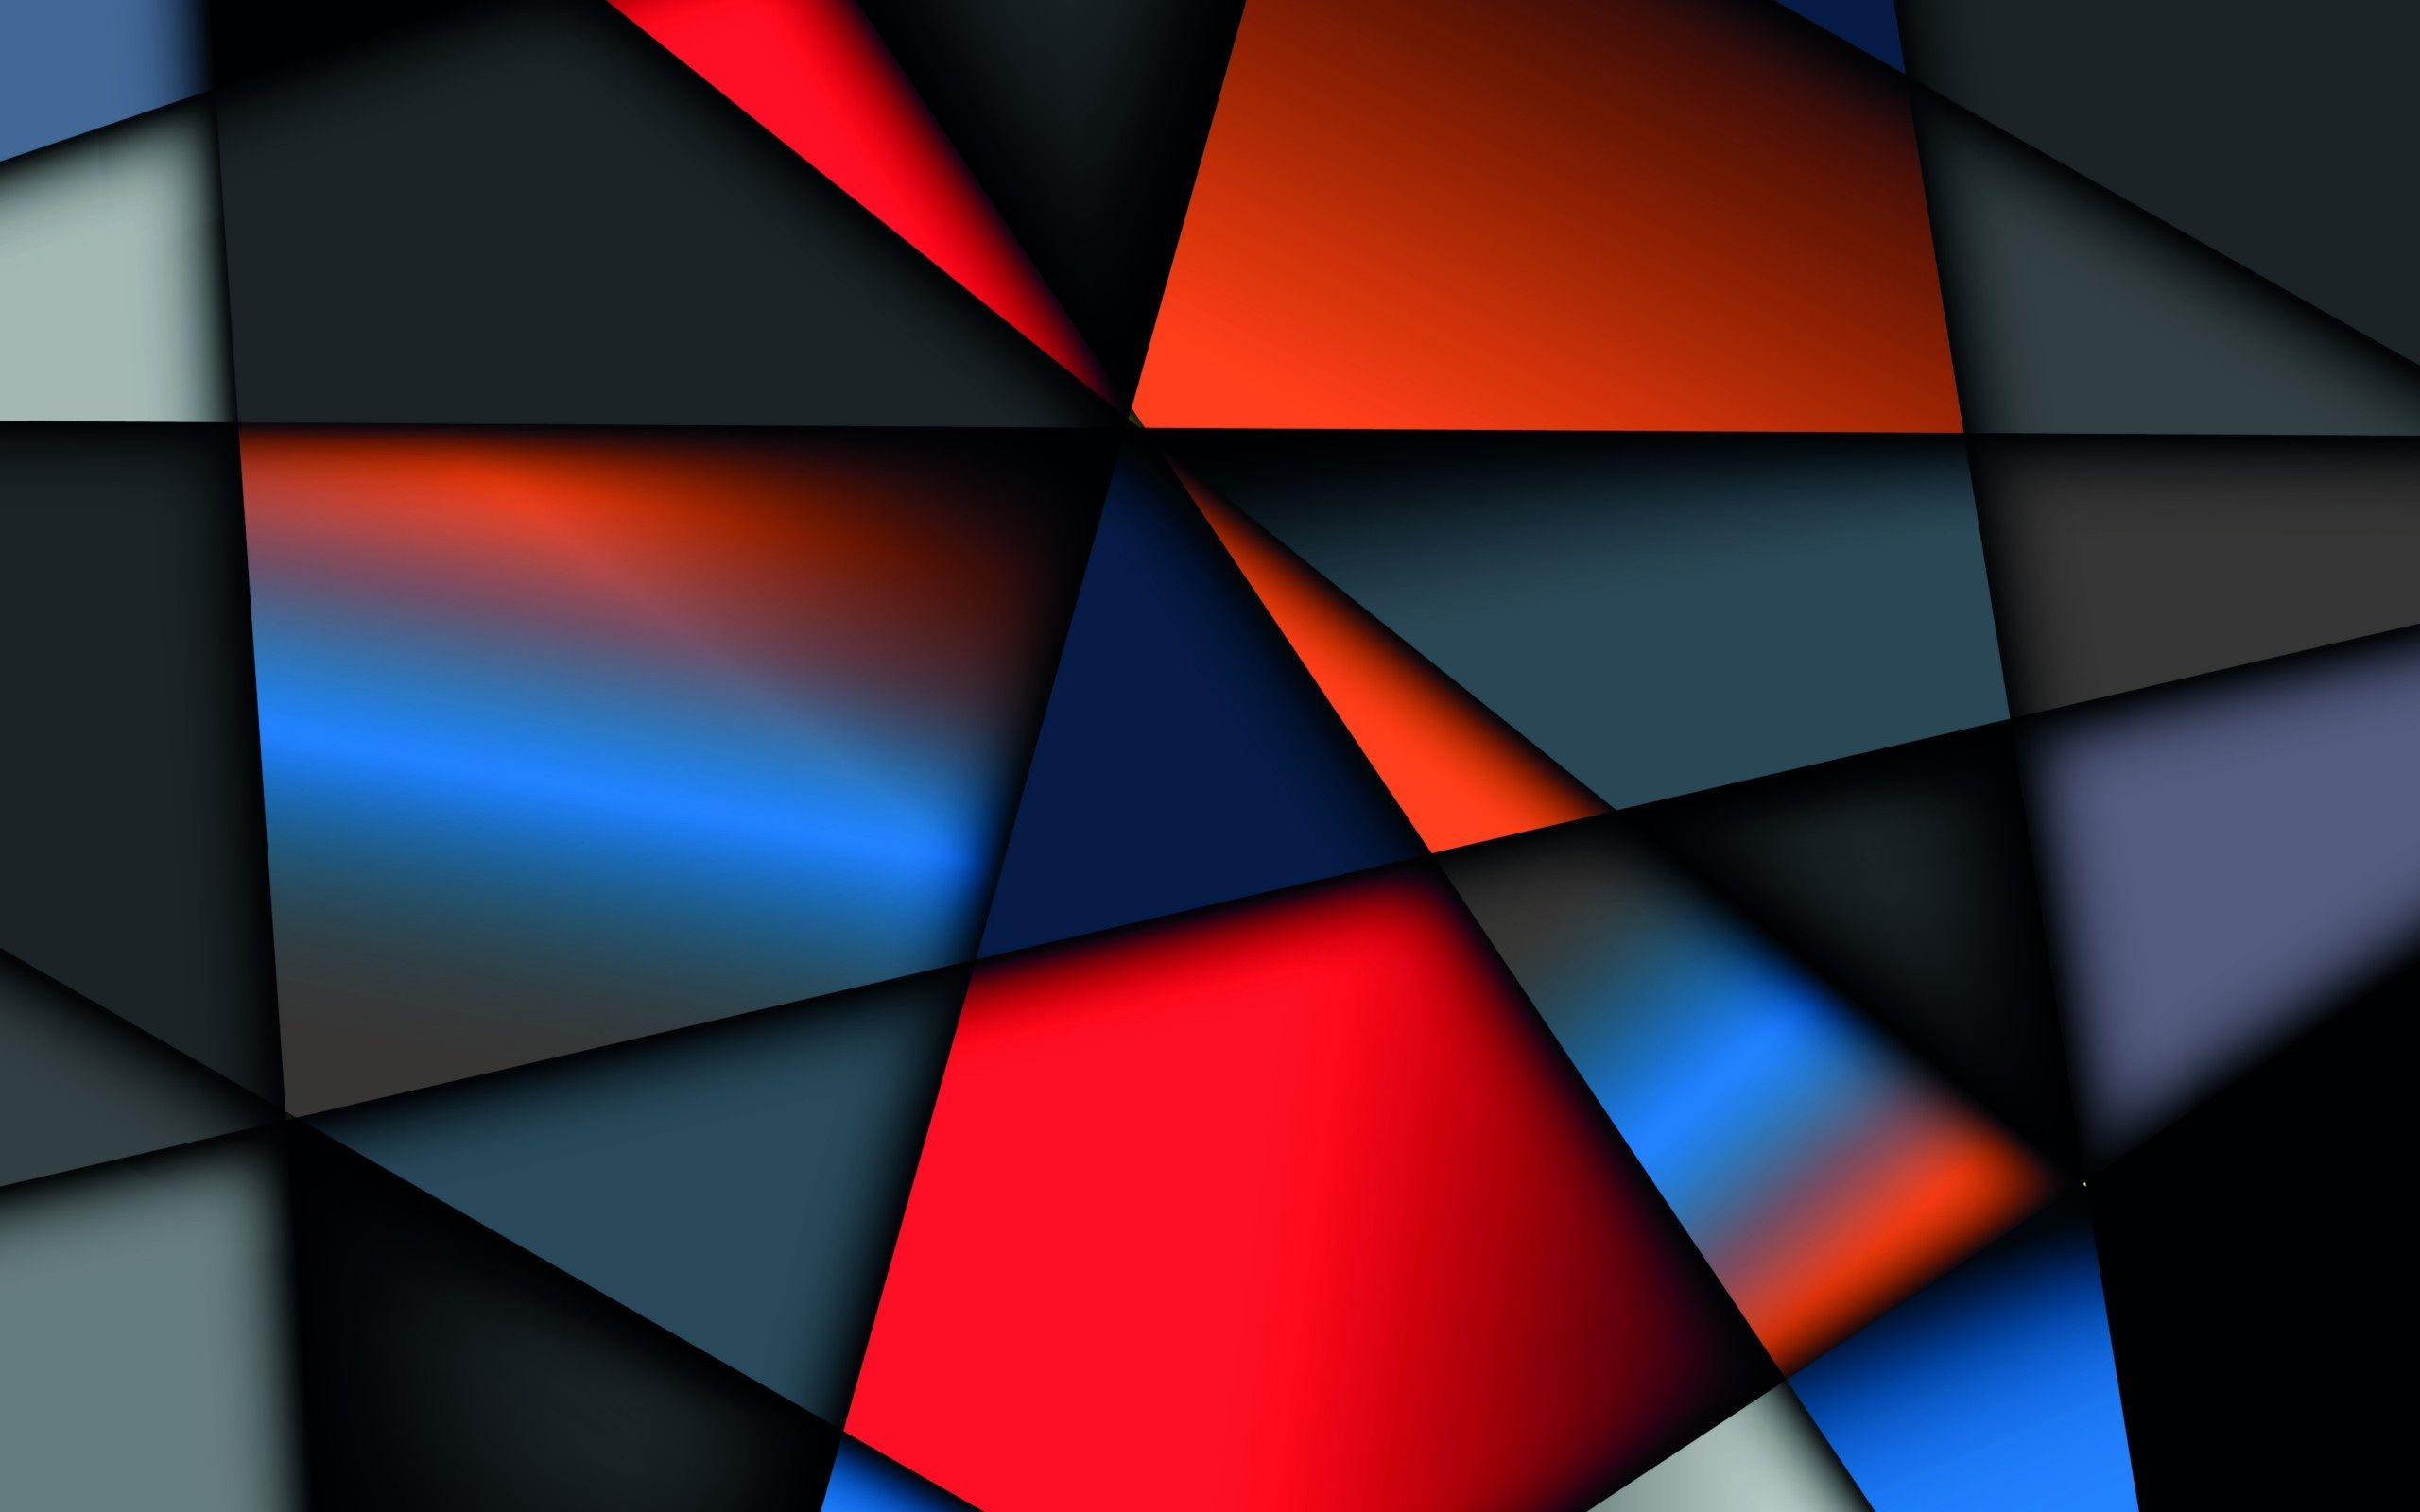 4k Ultra Hd Abstract Wallpapers On Wallpaperdog